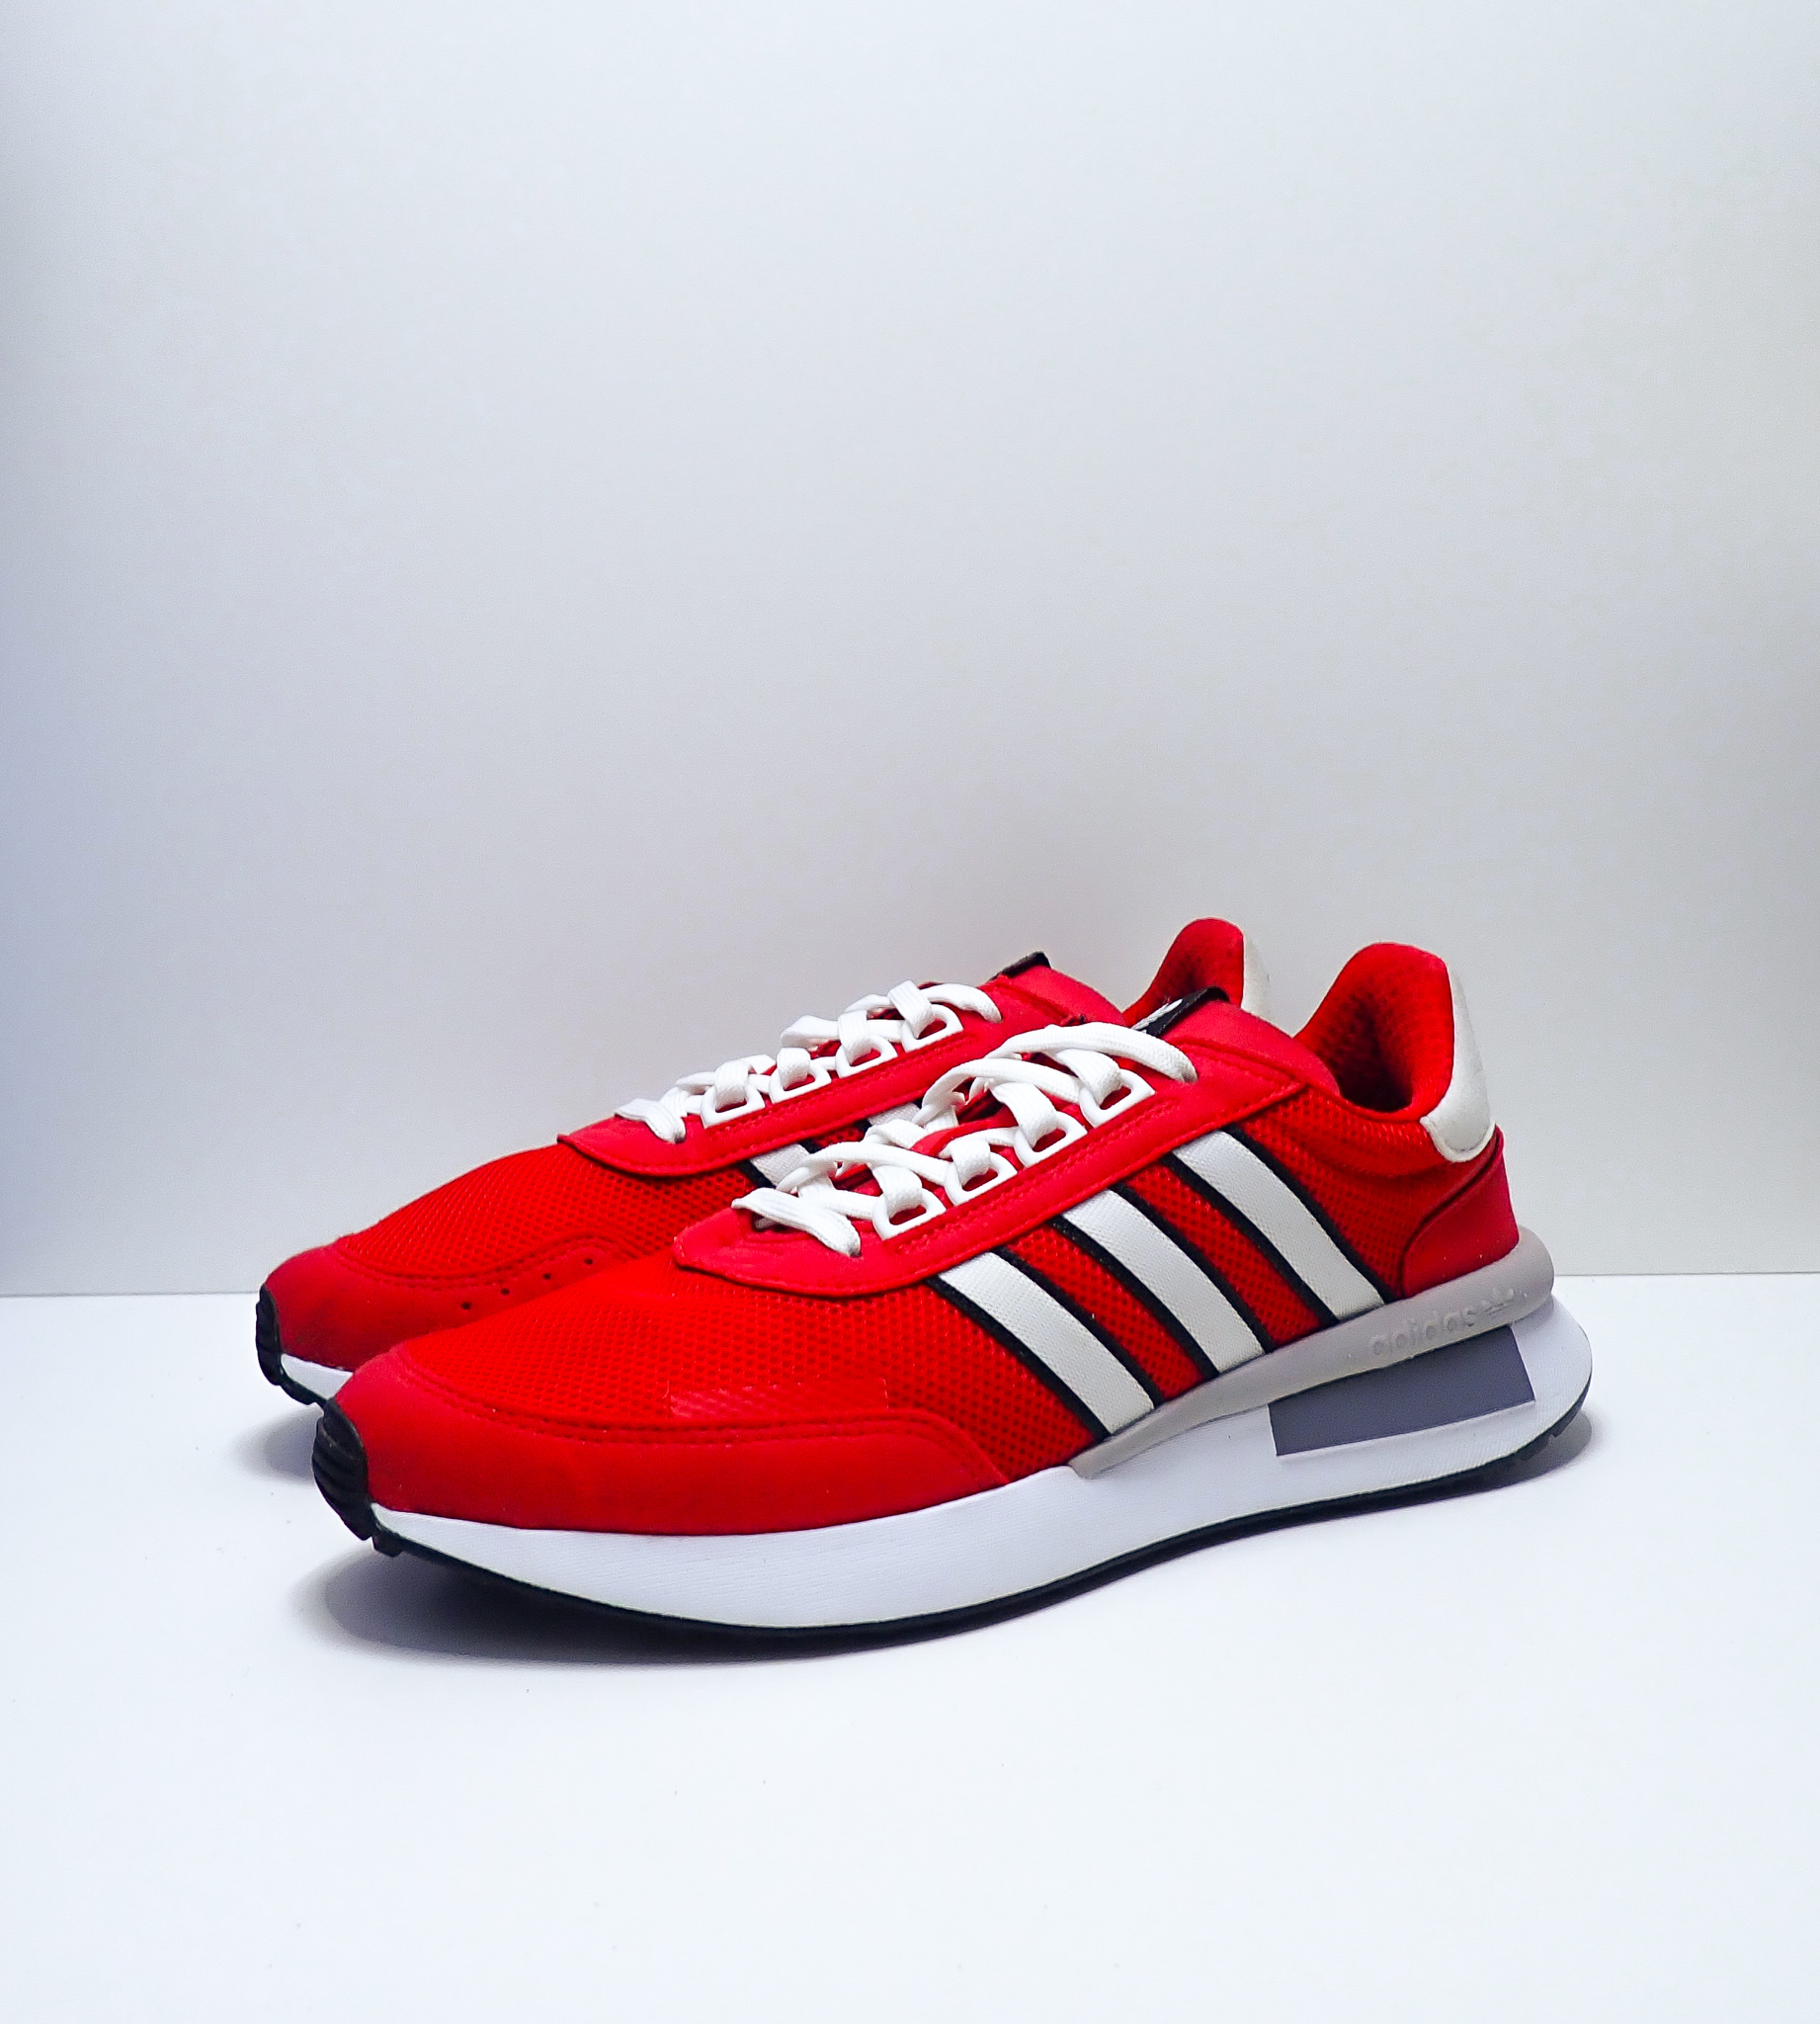 Adidas Originals Retroset Scarlet red